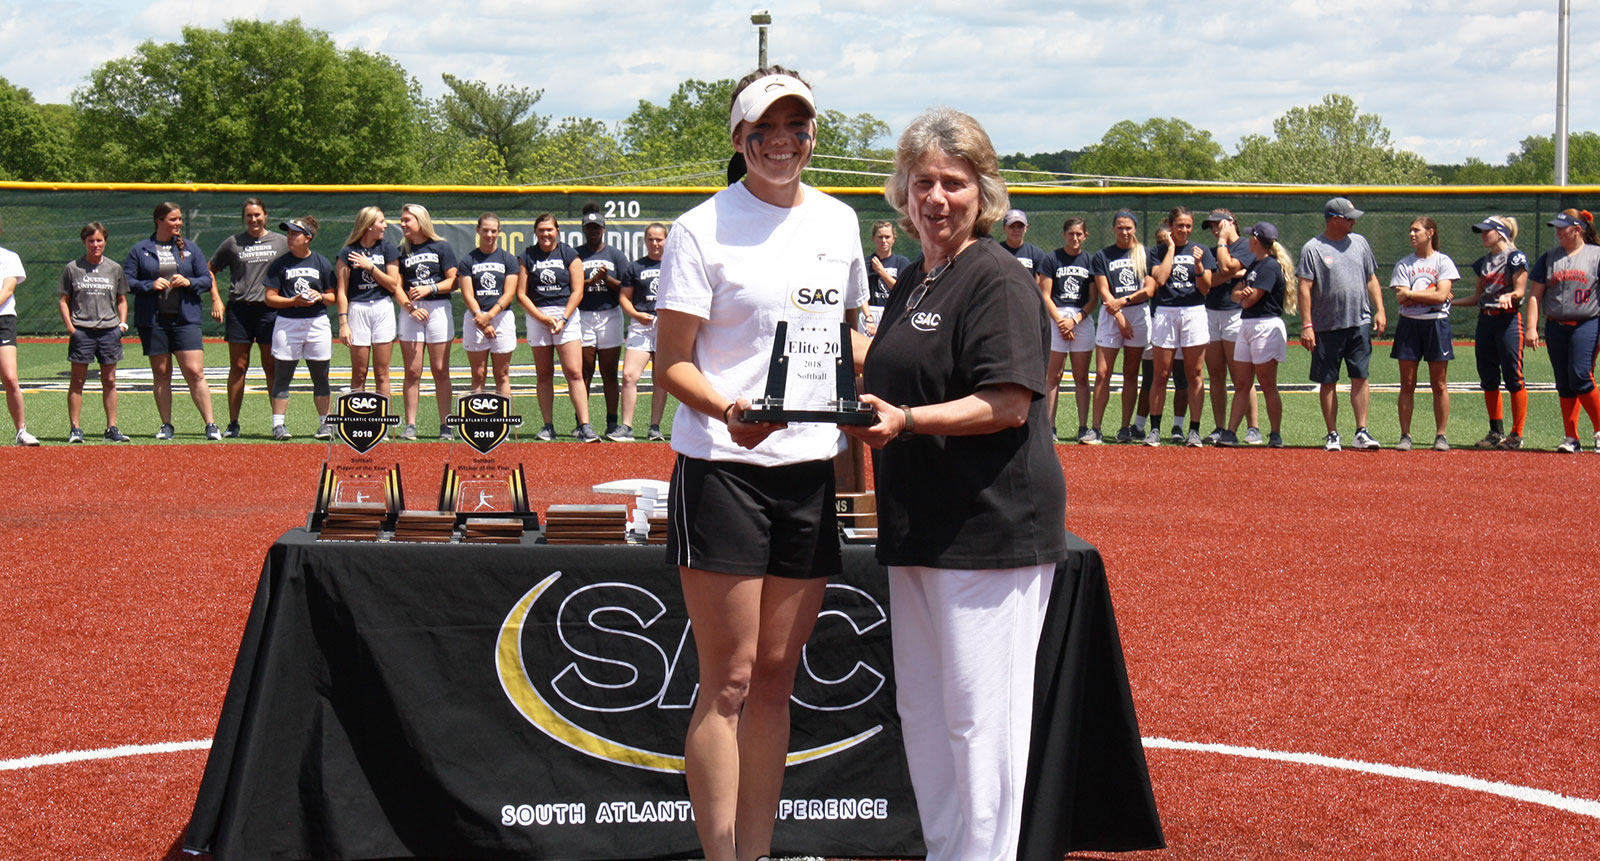 Grant Earns South Atlantic Conference Softball Elite 20 Award